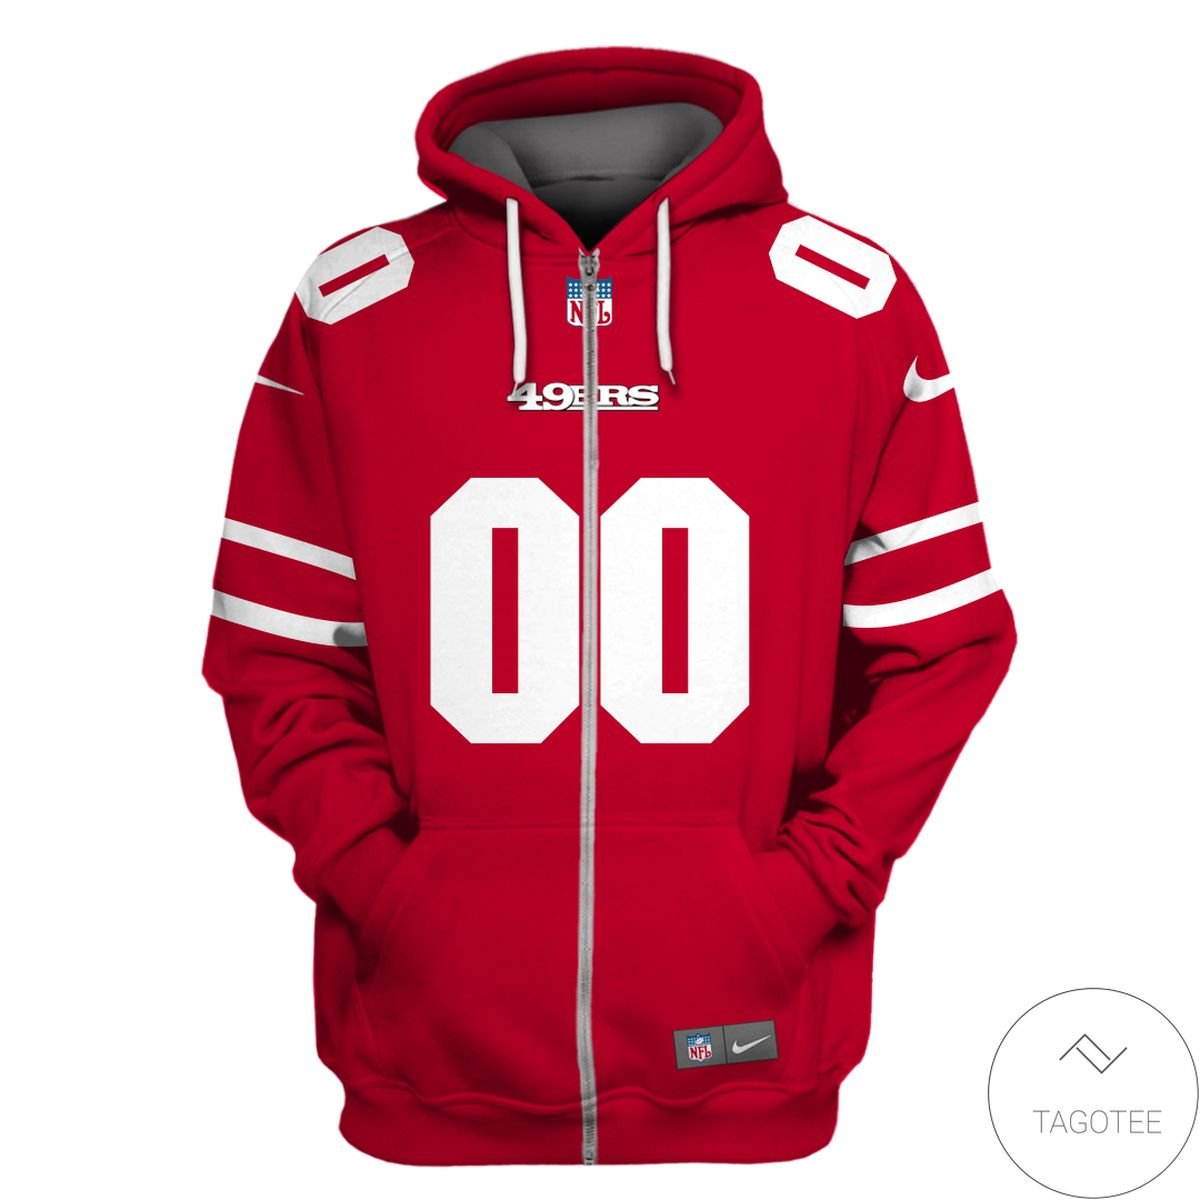 Handmade Personalized Name And Number San Francisco 49ers 3D All Over Print Hoodie